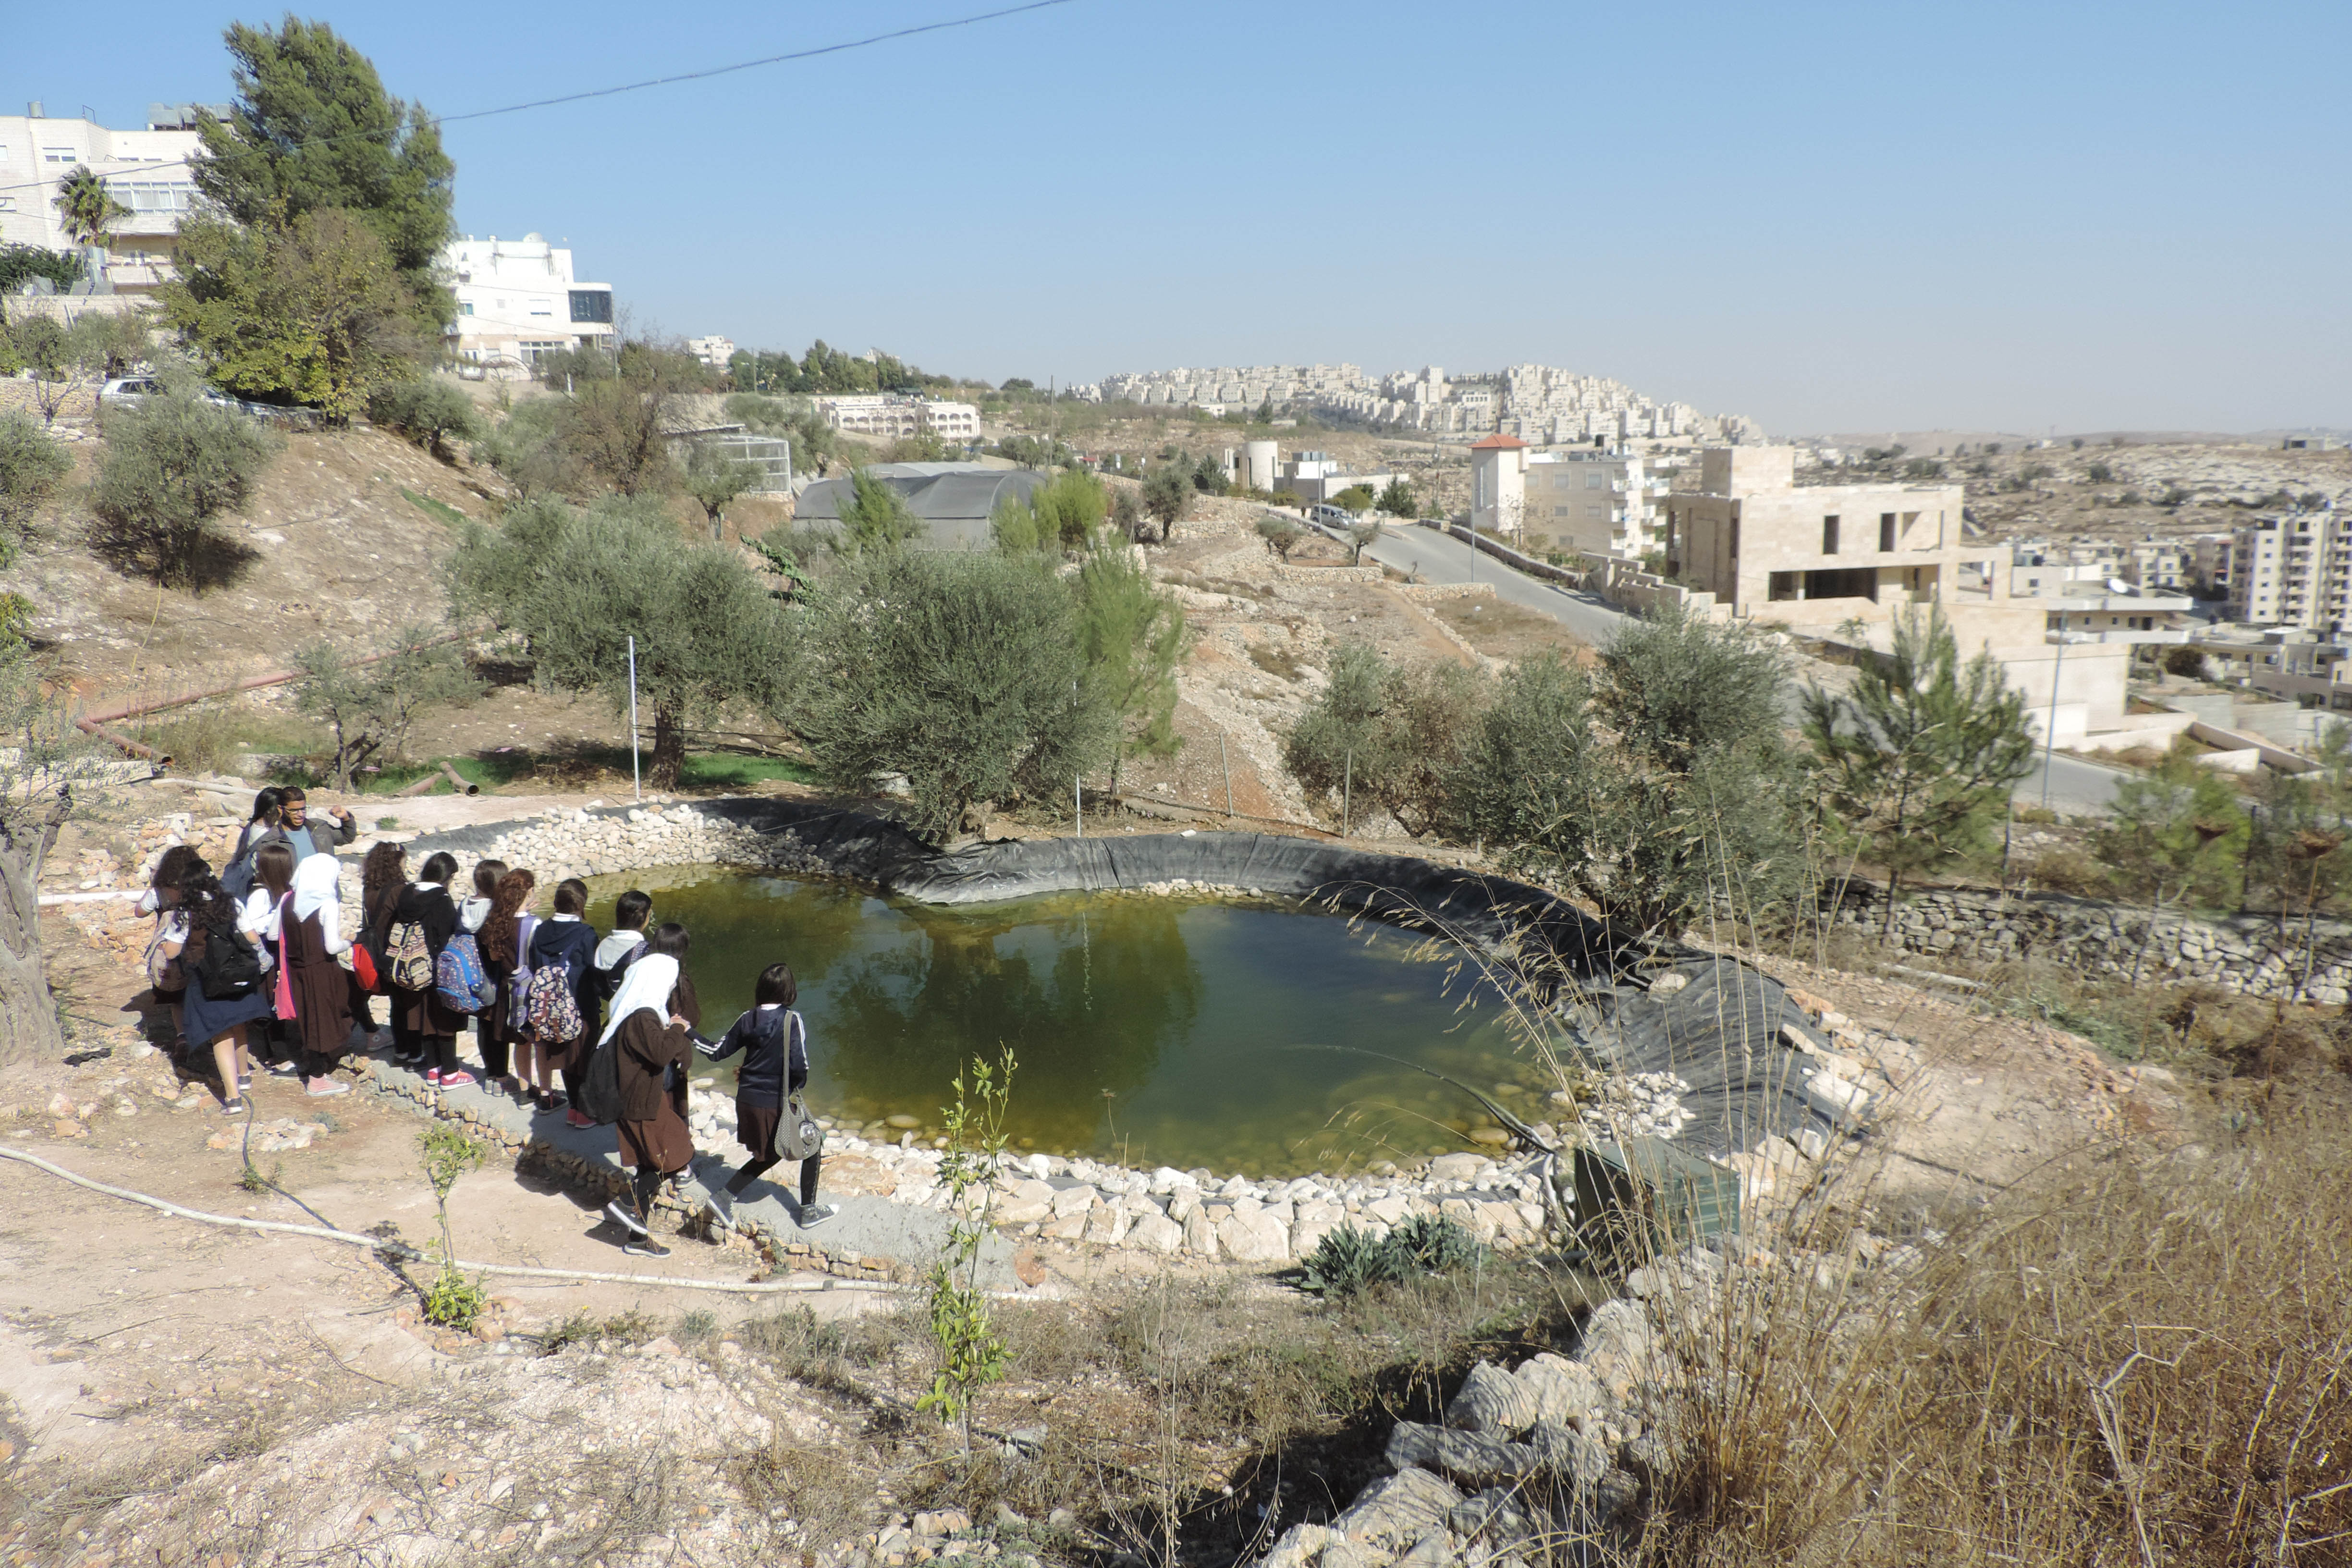 Schoolgirls visiting the museum stand by the pond in the garden overlooking the Israeli settlement of Har Homa (MEE/Miriam Deprez)